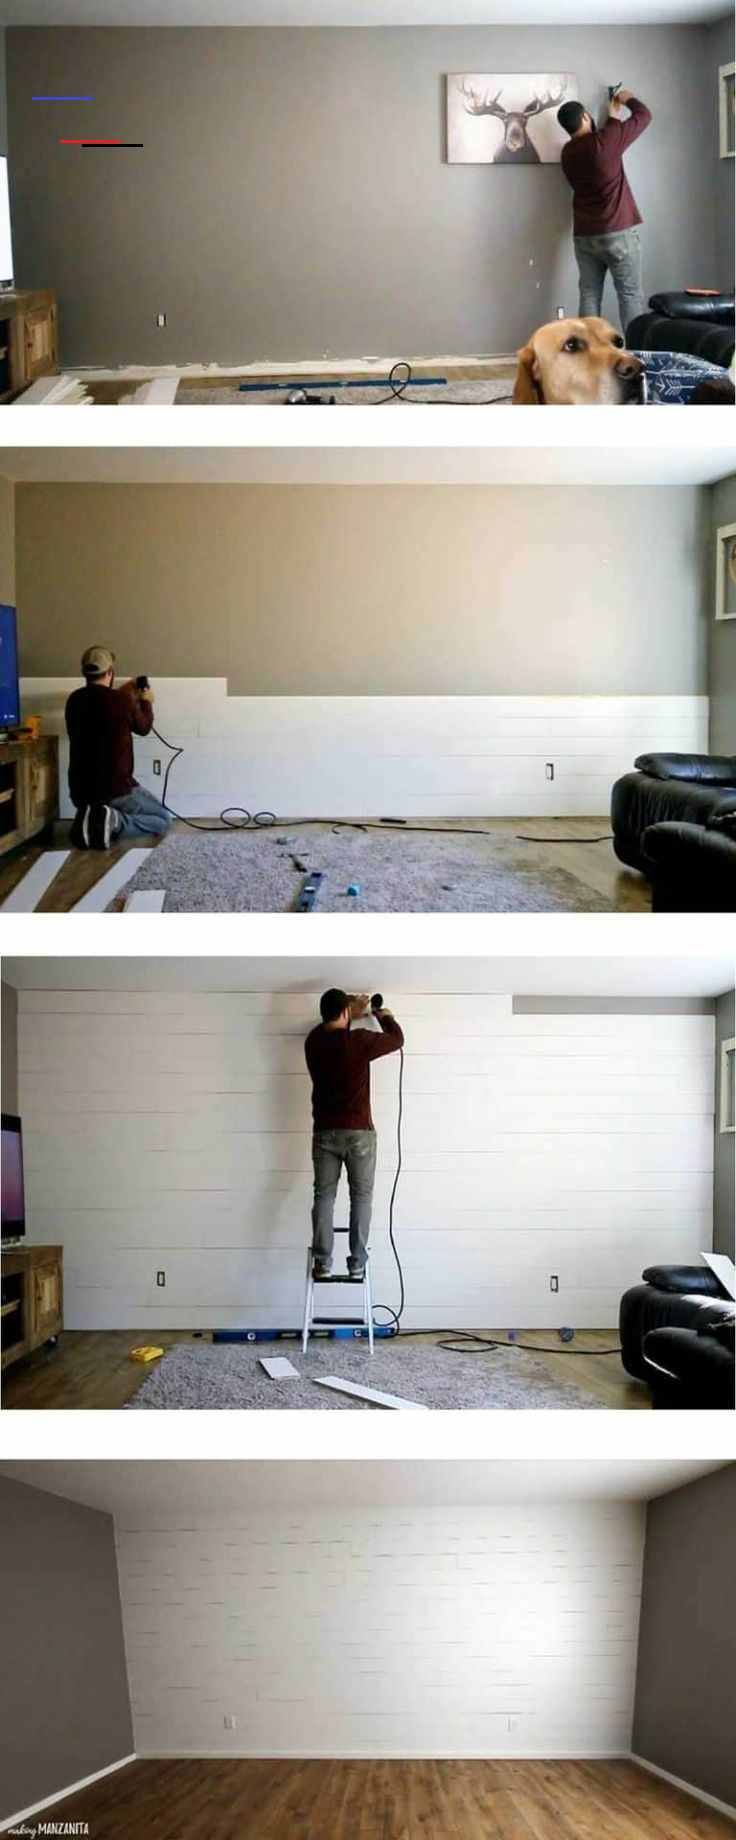 How To Make A Plywood Shiplap Wall - Making Manzanita Step by Step tutorial for how to make your own shiplap wall with plywood in living room | Easy DIY Farmhouse Style shiplap accent wall painted white | Bring out your inner Joanna Gaines #DIY #homeimprovement #shiplap #homedesign<br> Are you looking for a fun way to add a little farmhouse charm to a room? You can make your own shiplap wall with plywood! Learn how we saved money by making our own shiplap with plywood instead of buying the prema